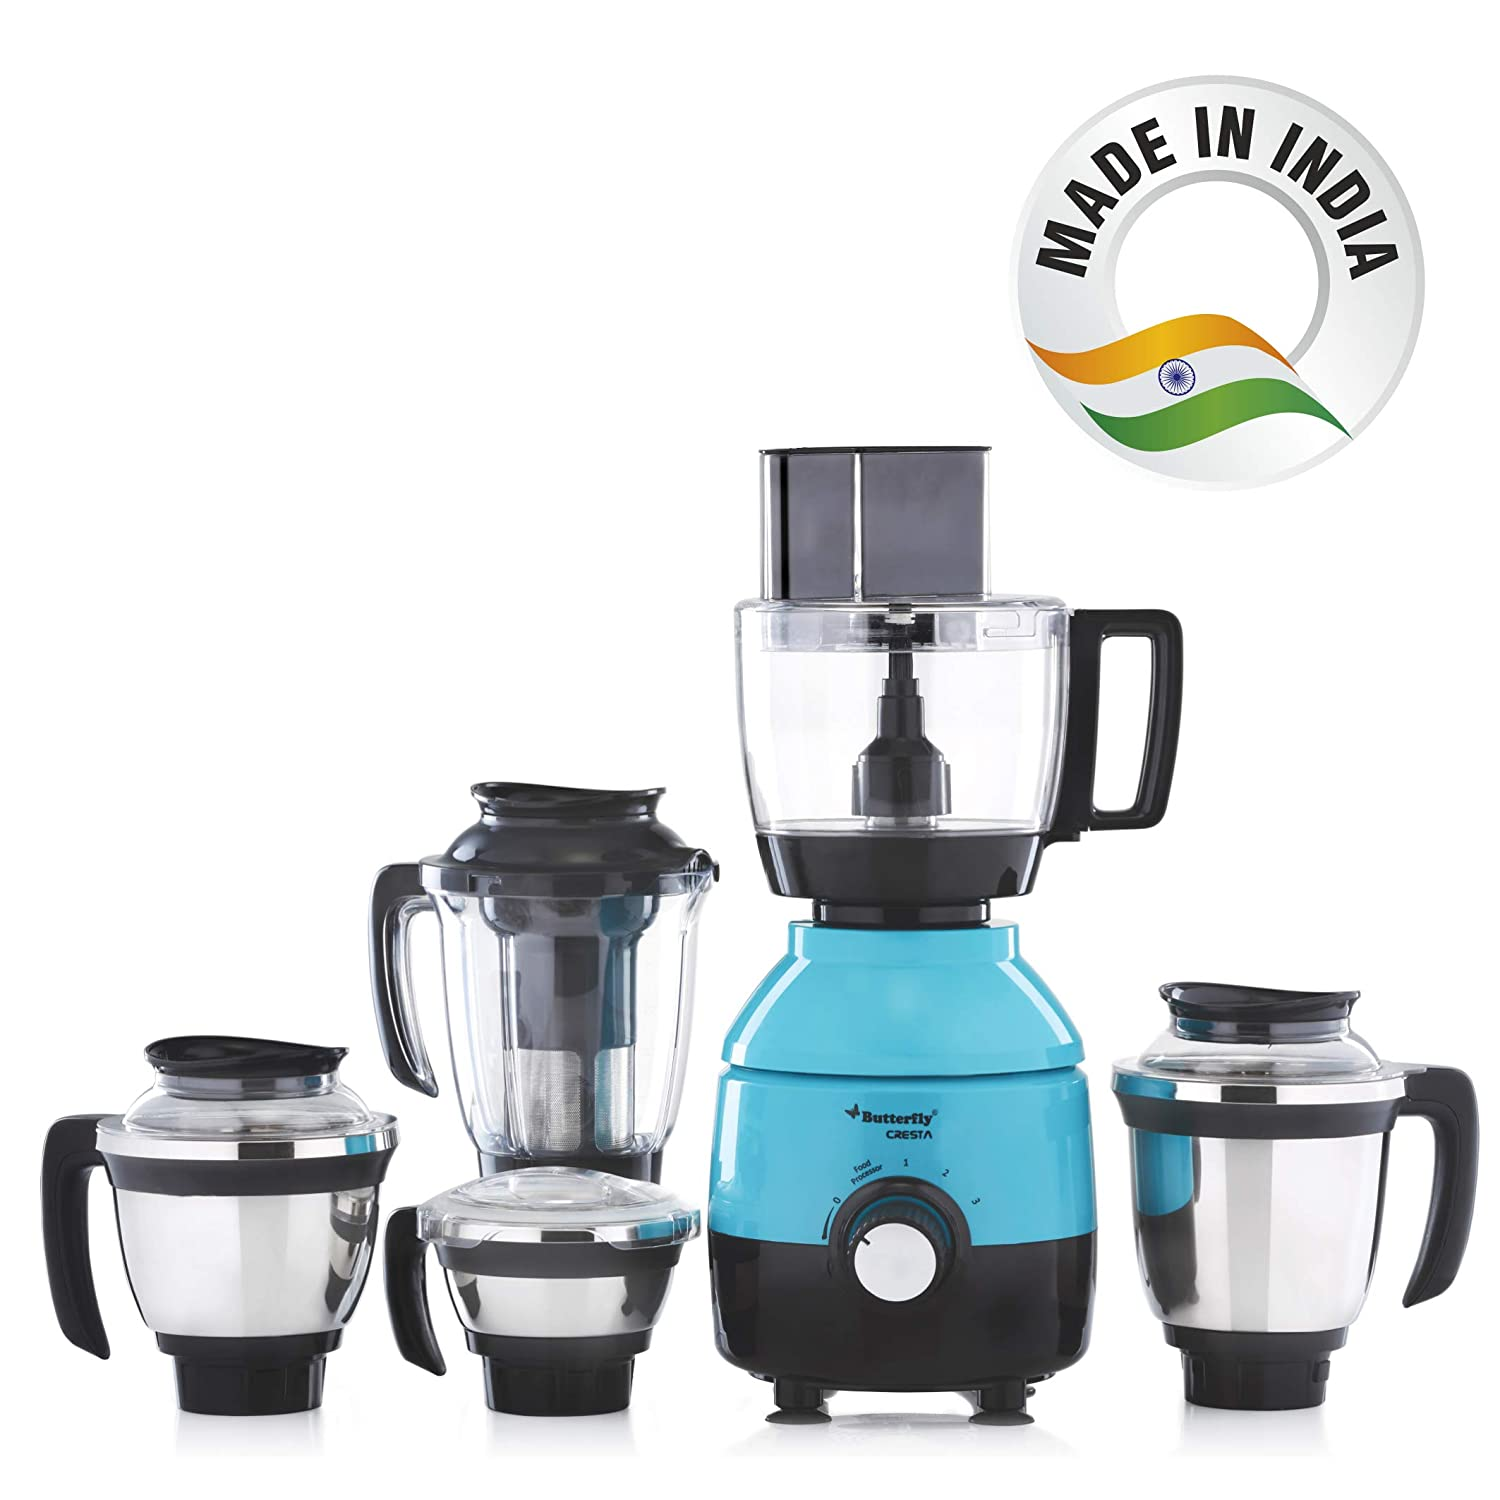 Butterfly -Best food processor in India